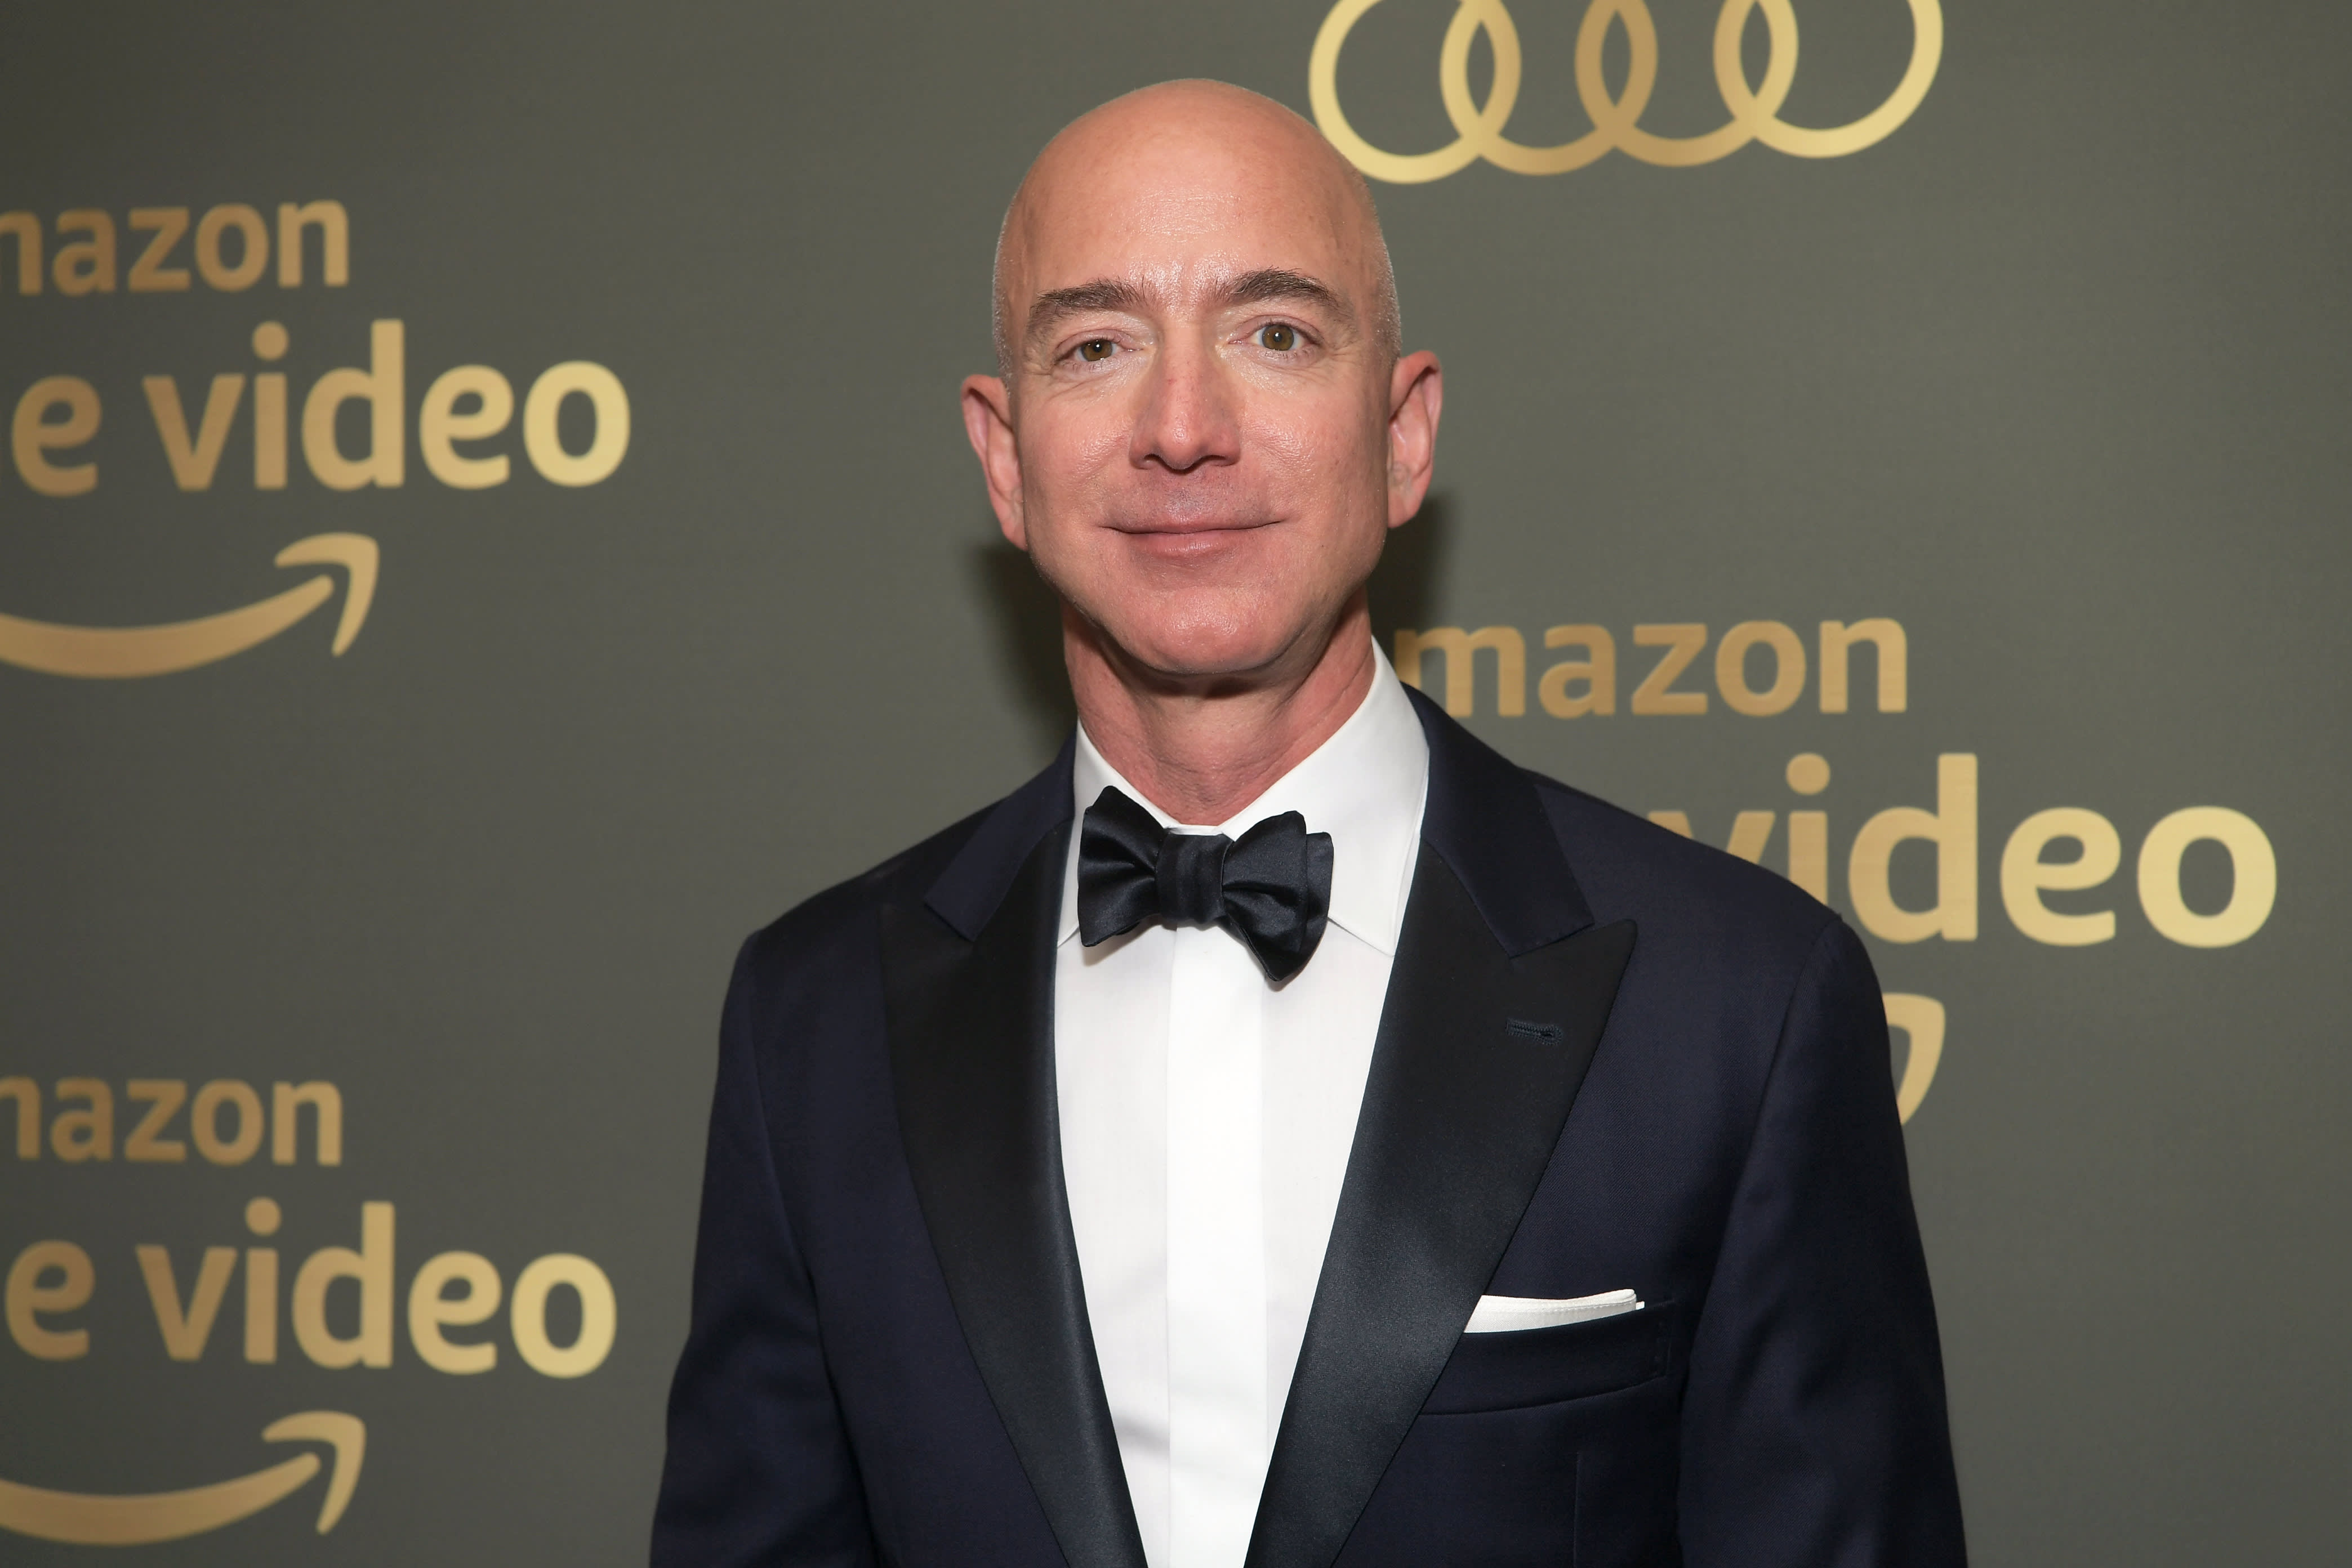 Amazon CEO Jeff Bezos' secrets to success